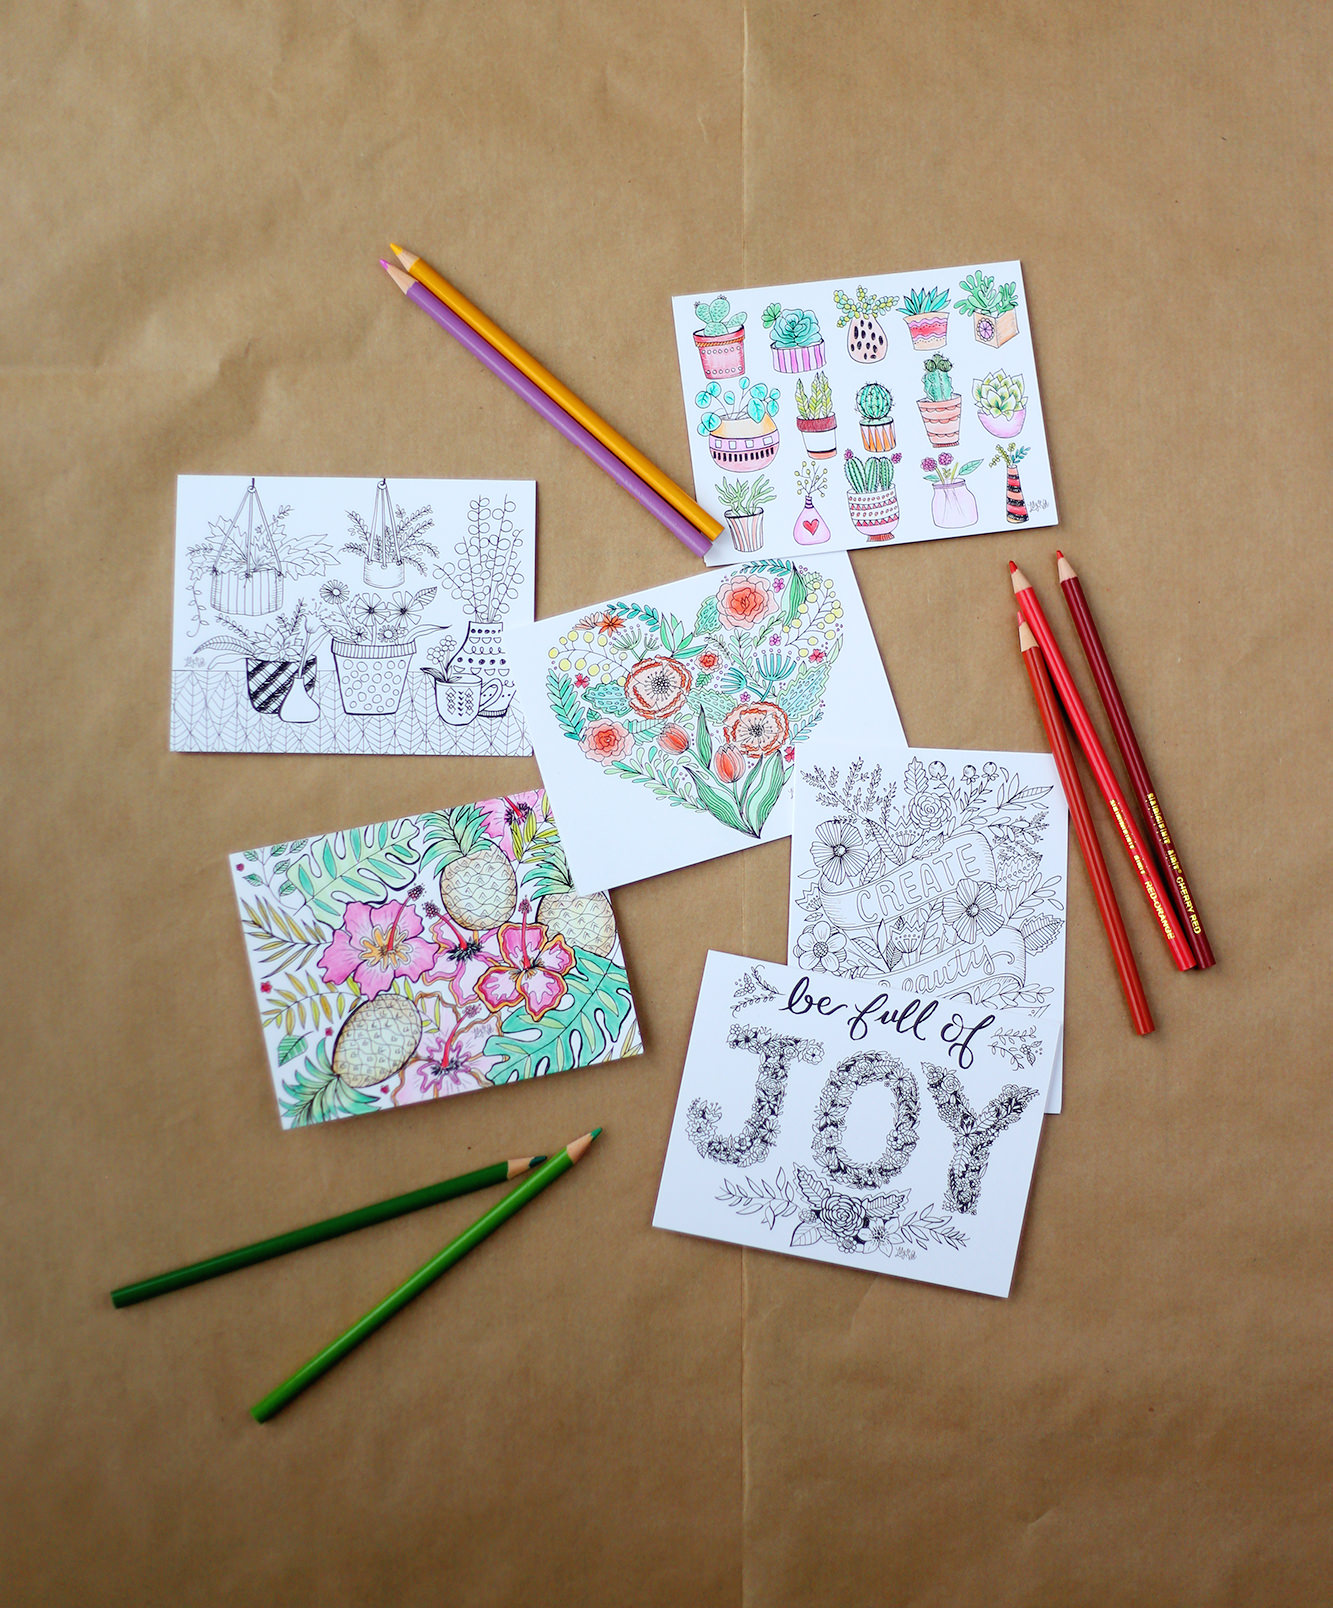 Receive eight assorted botanical and floral designs in our coloring notes set! Color the cards however you like!